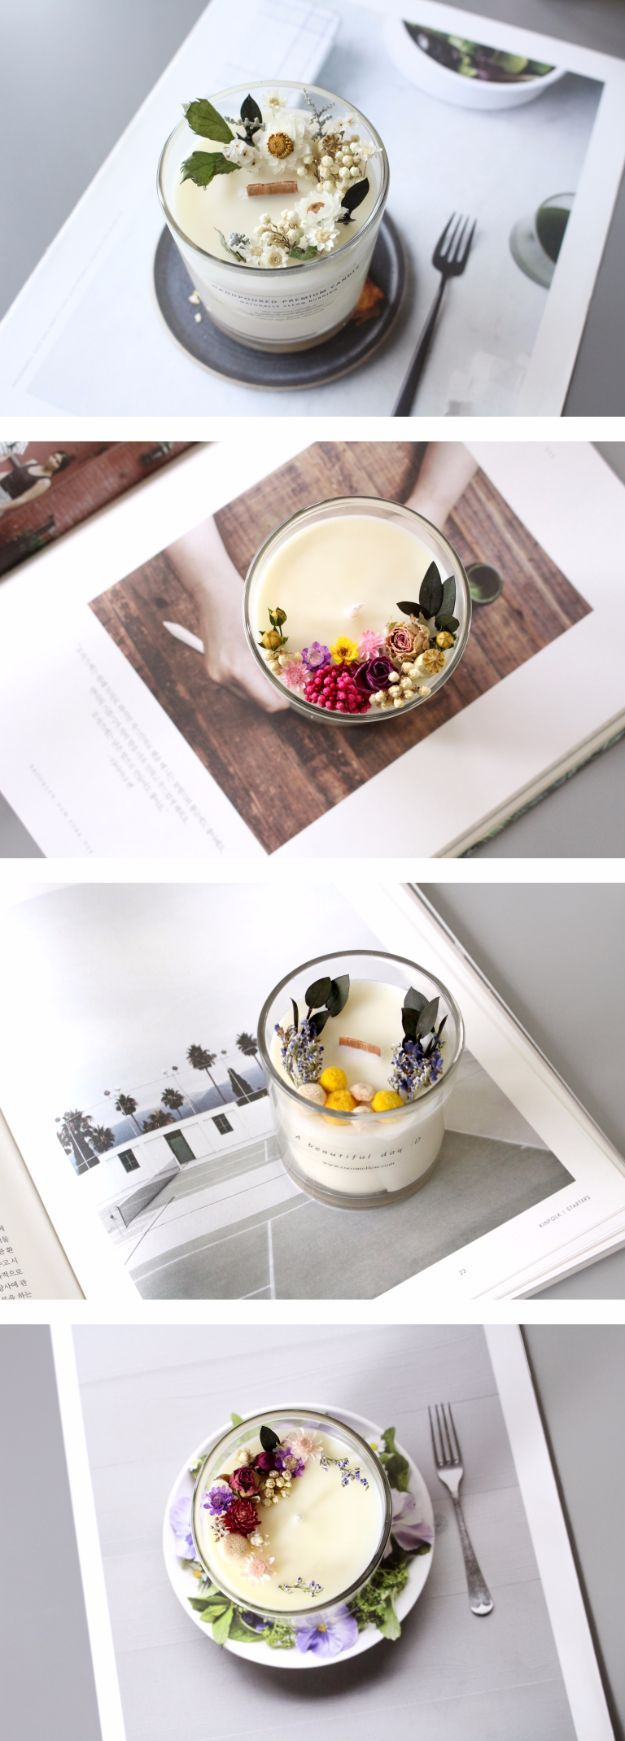 41 Brilliant DIY Ideas for Candles Homemade candles, Diy